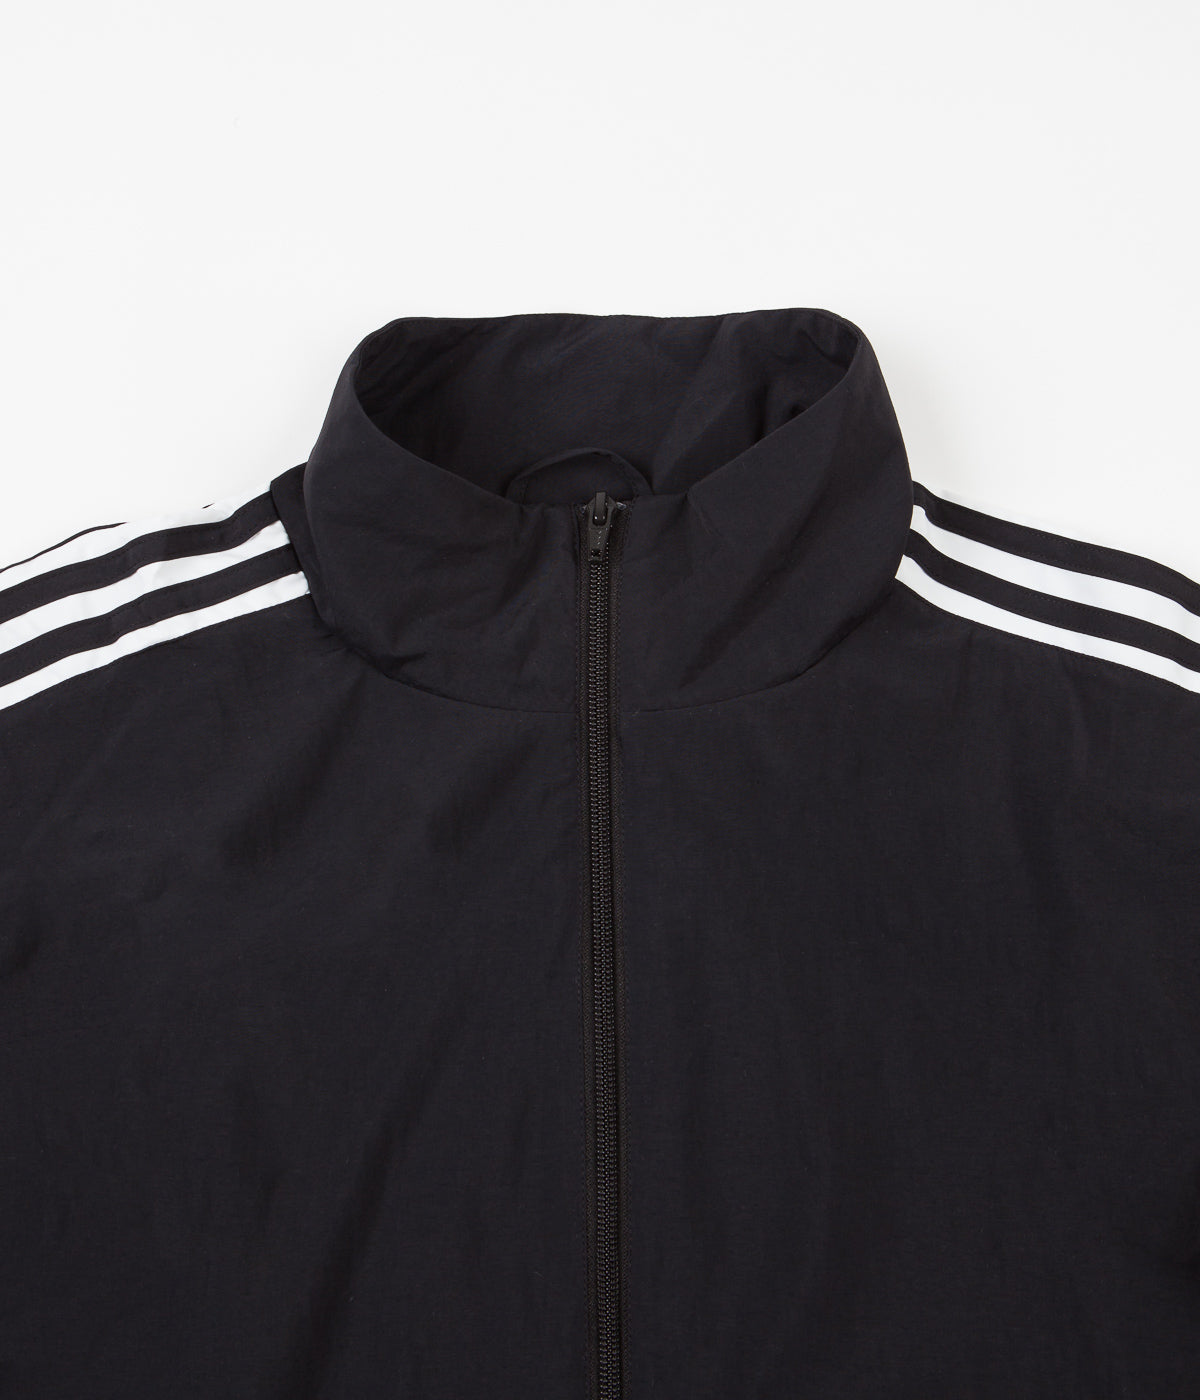 Adidas Standard 20 Jacket - Black / White